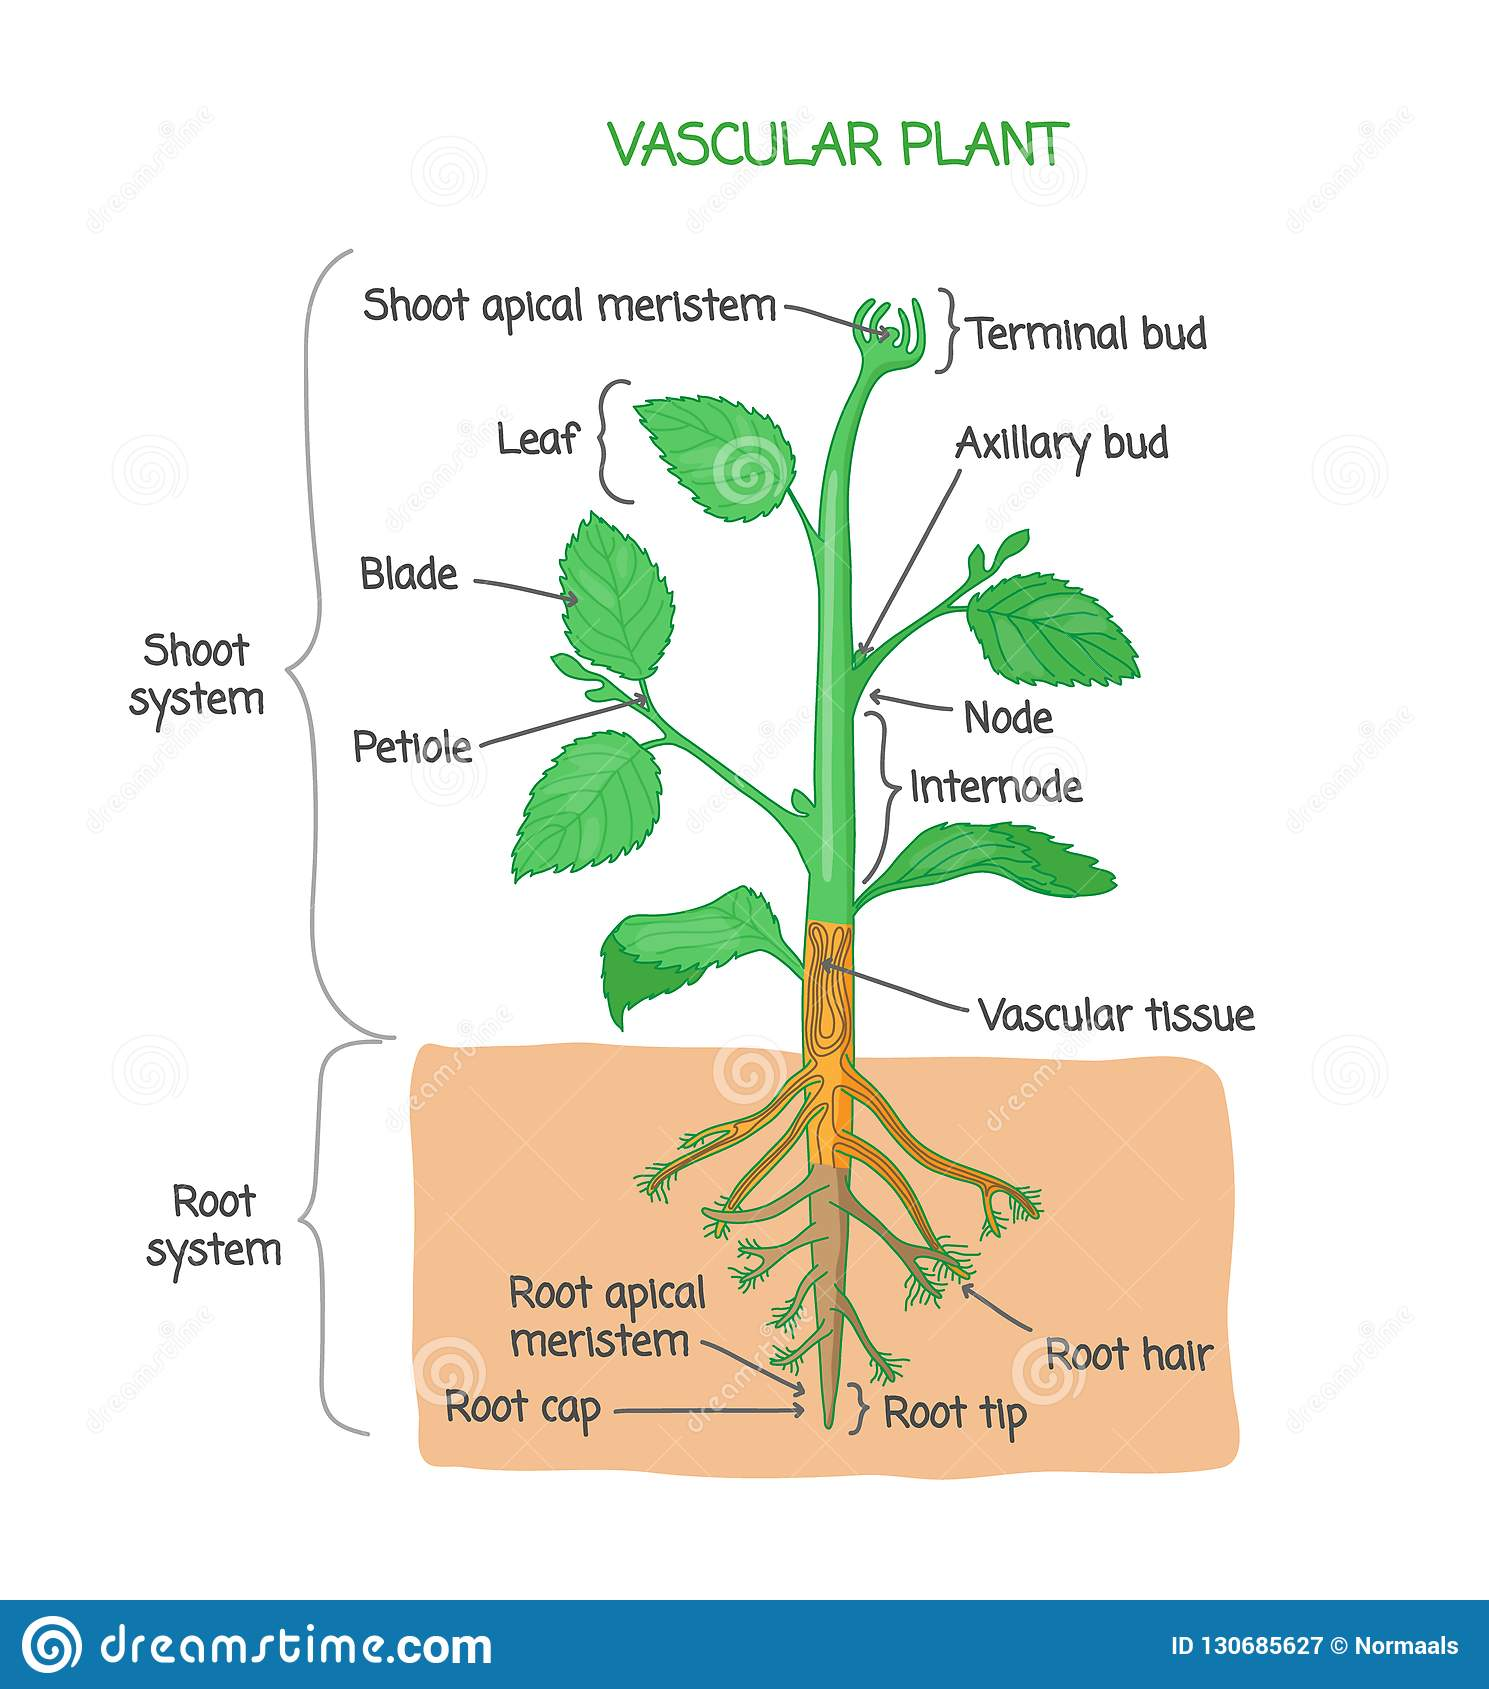 Vascular Plant Biological Structure Labeled Diagram